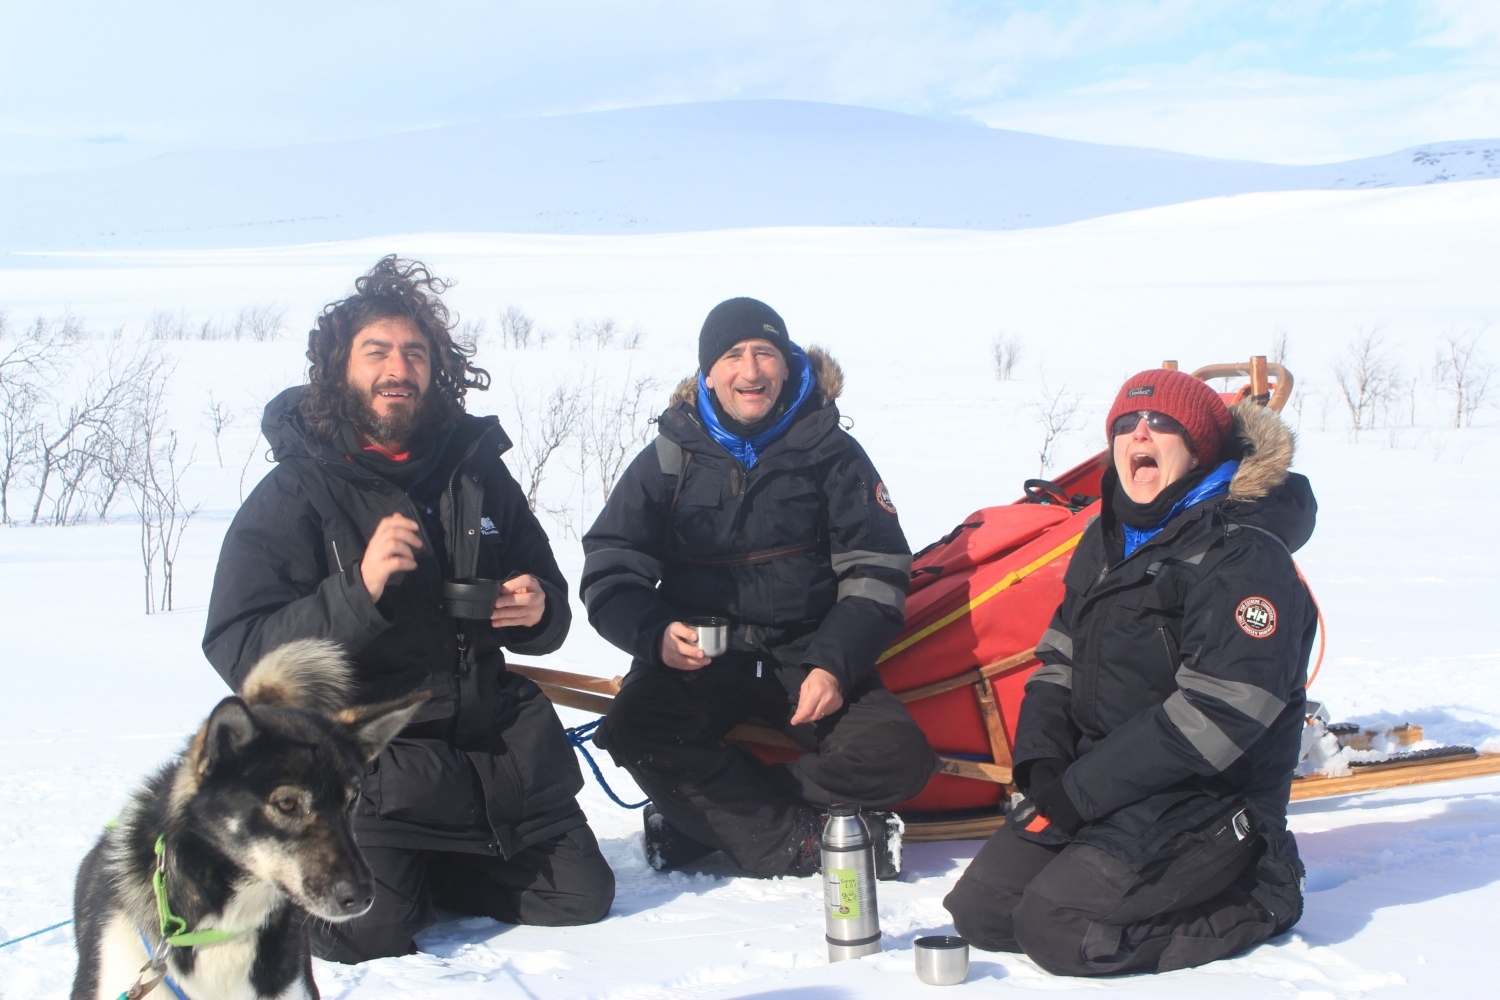 Three mushers resting next to a sled